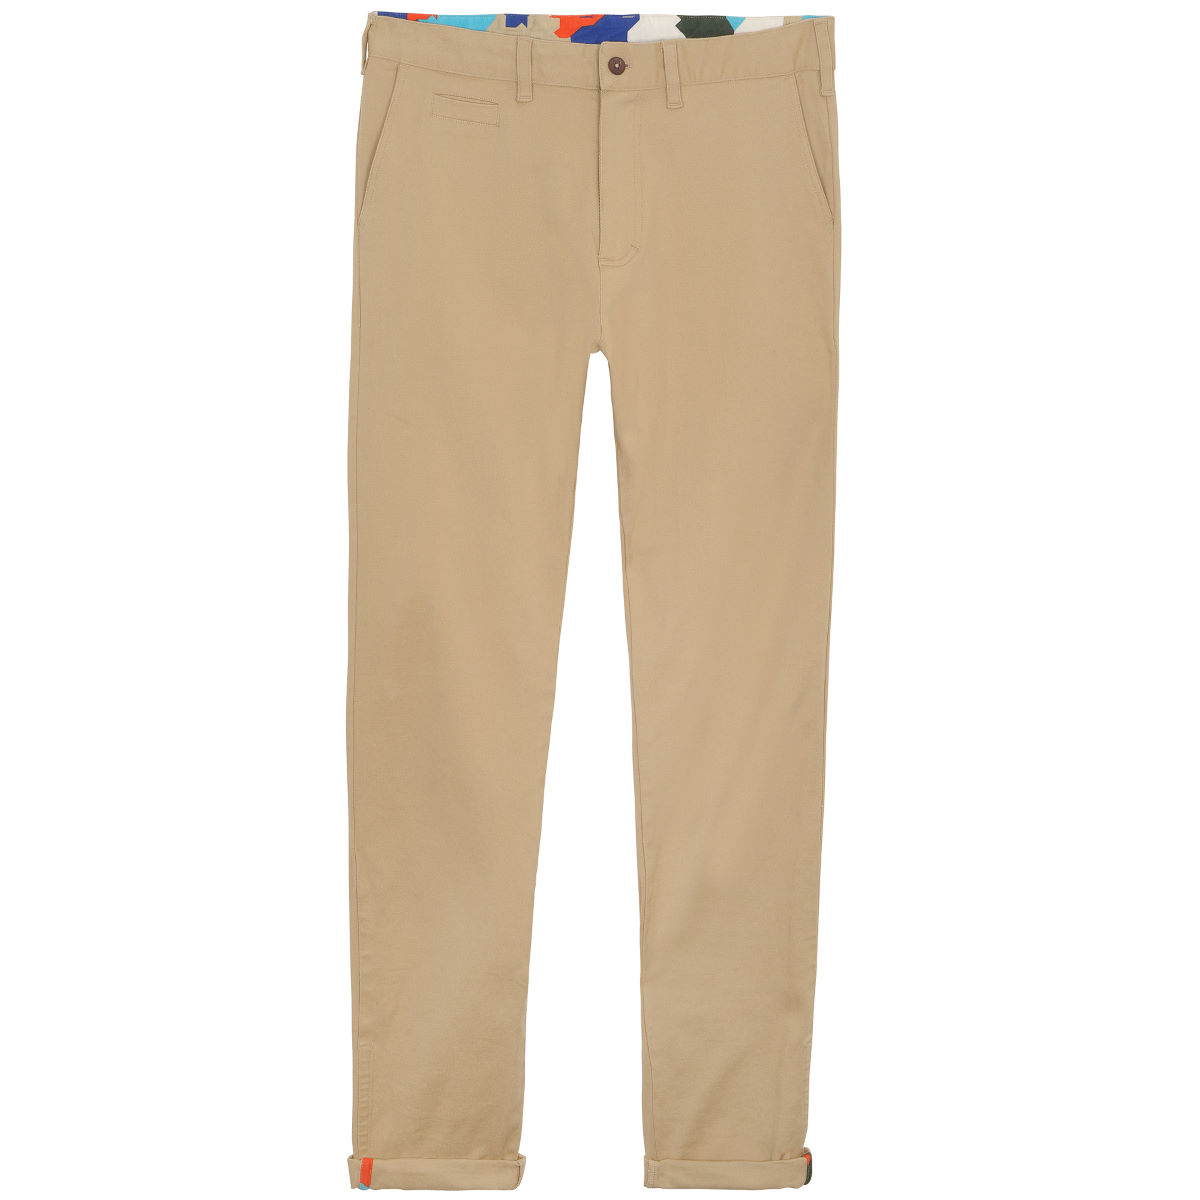 Le Coq Sportif Therain Cycle Pants - 42 Incense | Casual Pants